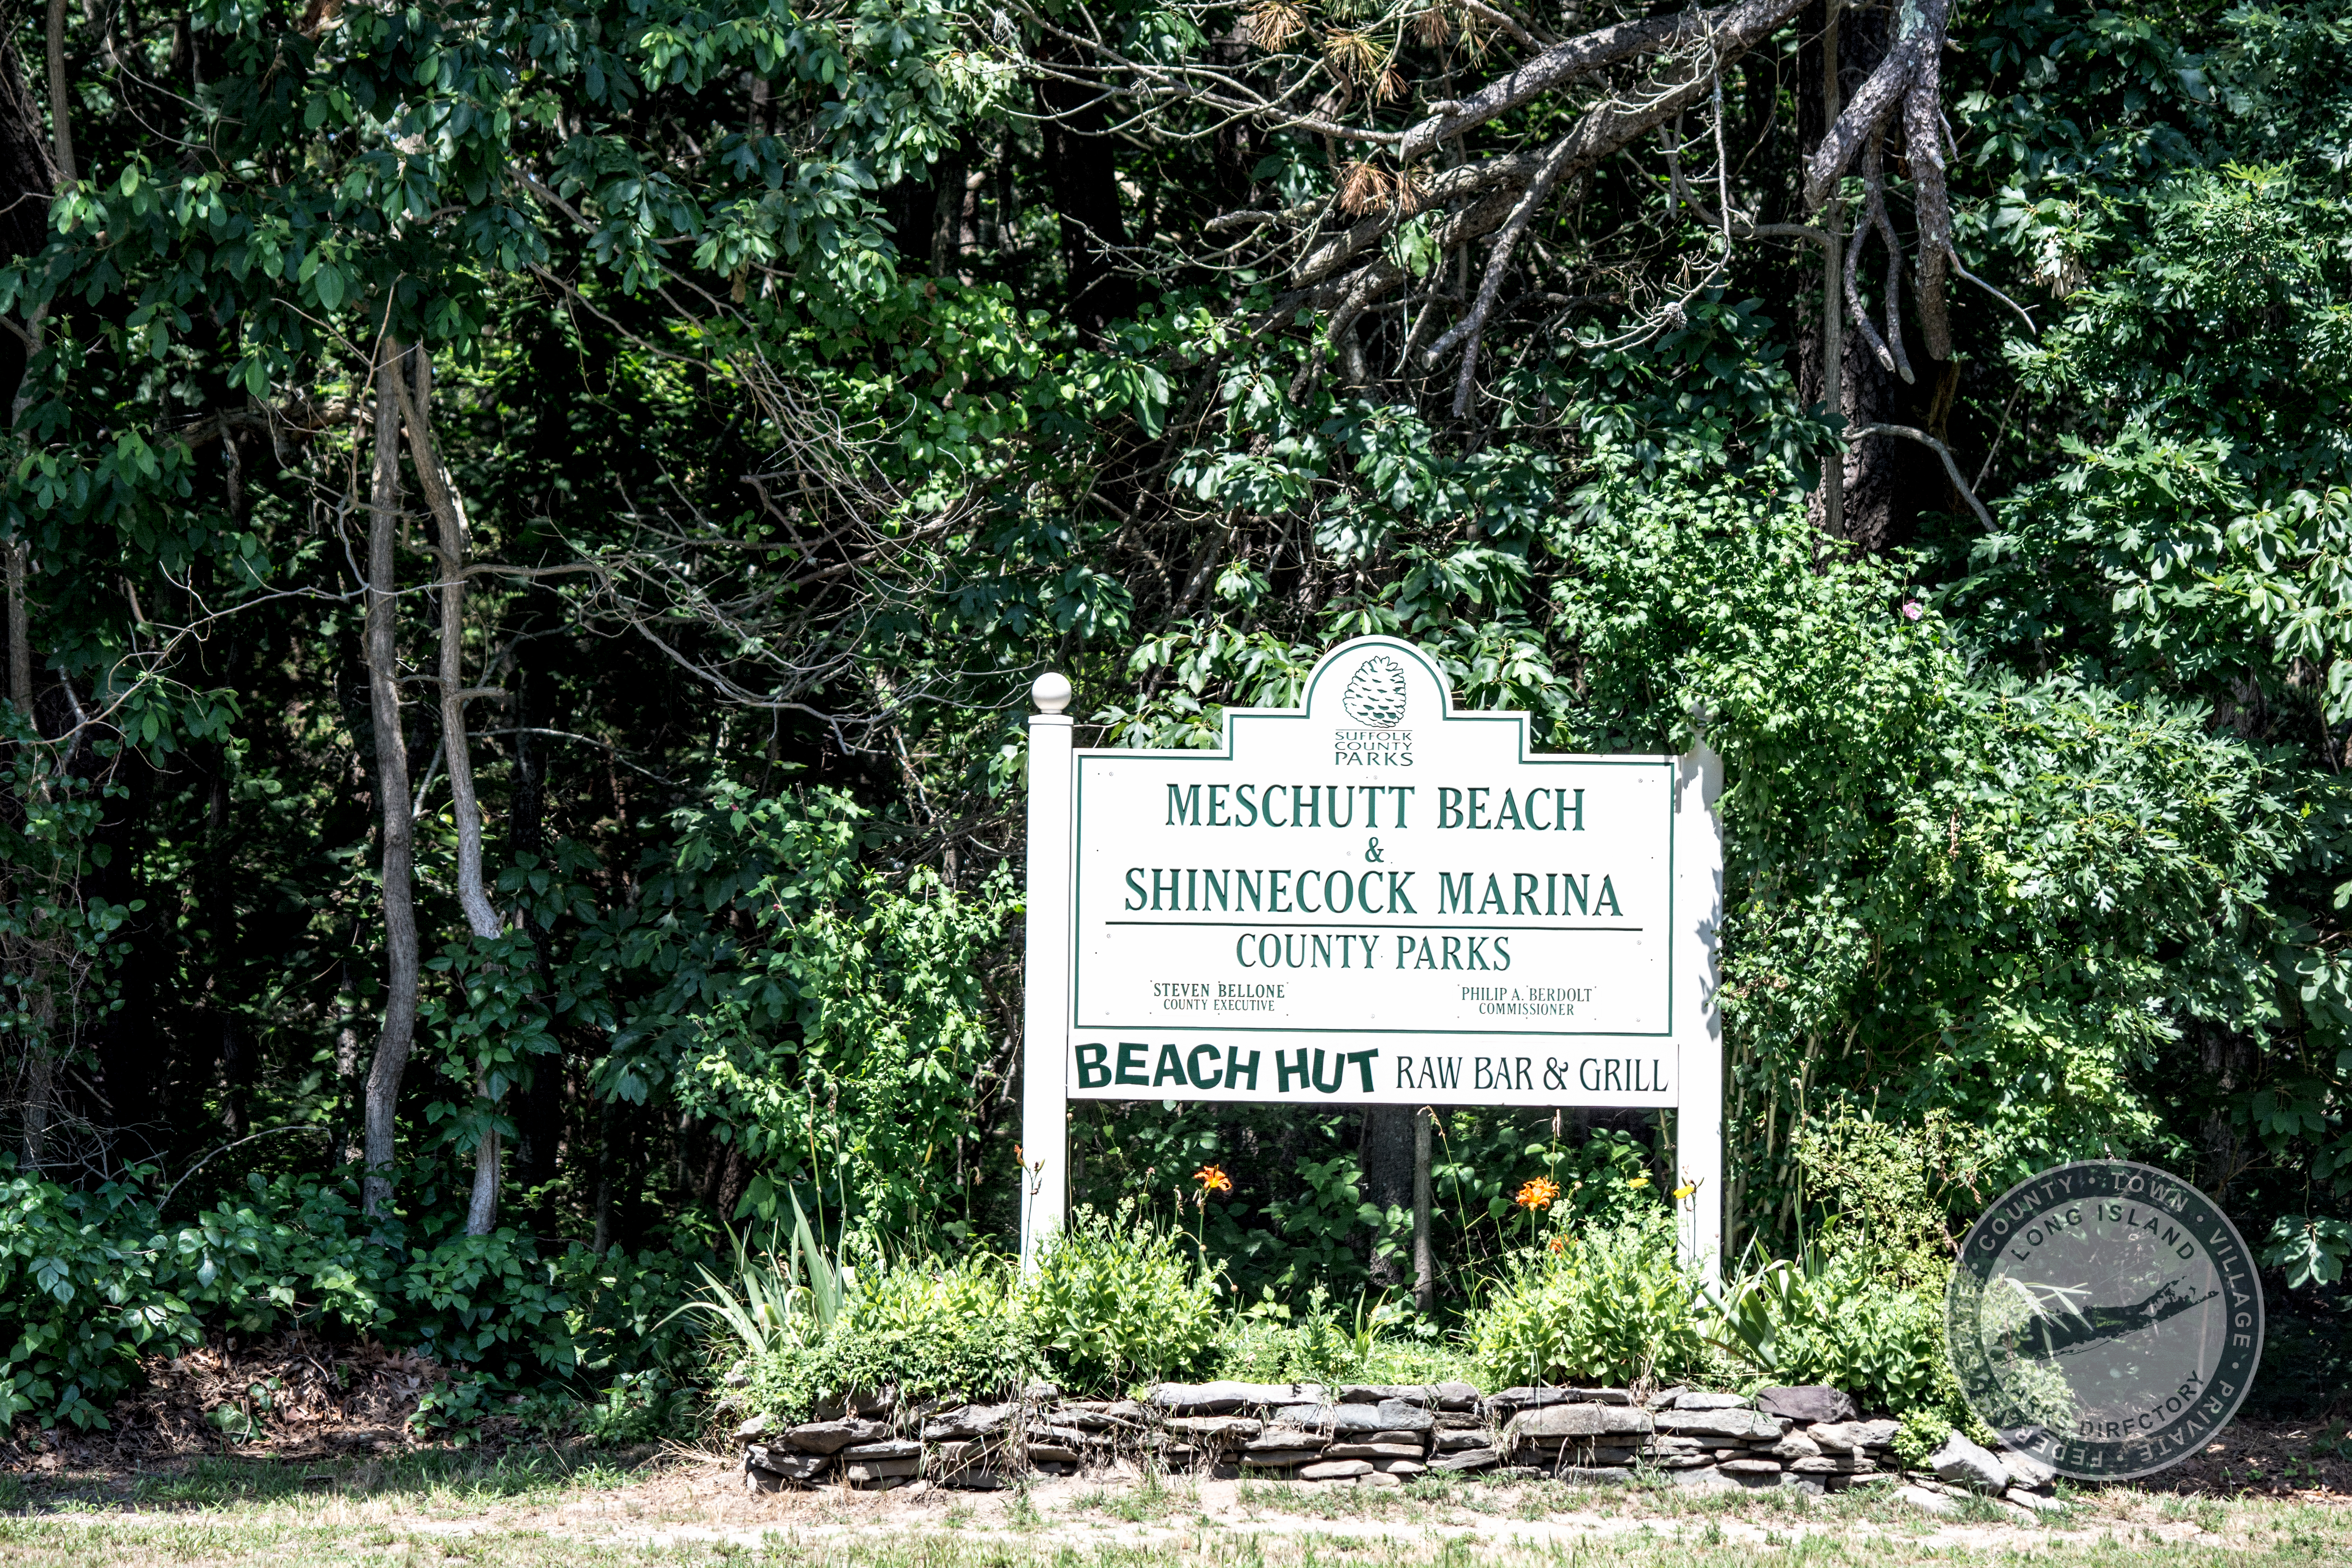 Meschutt Beach County Park